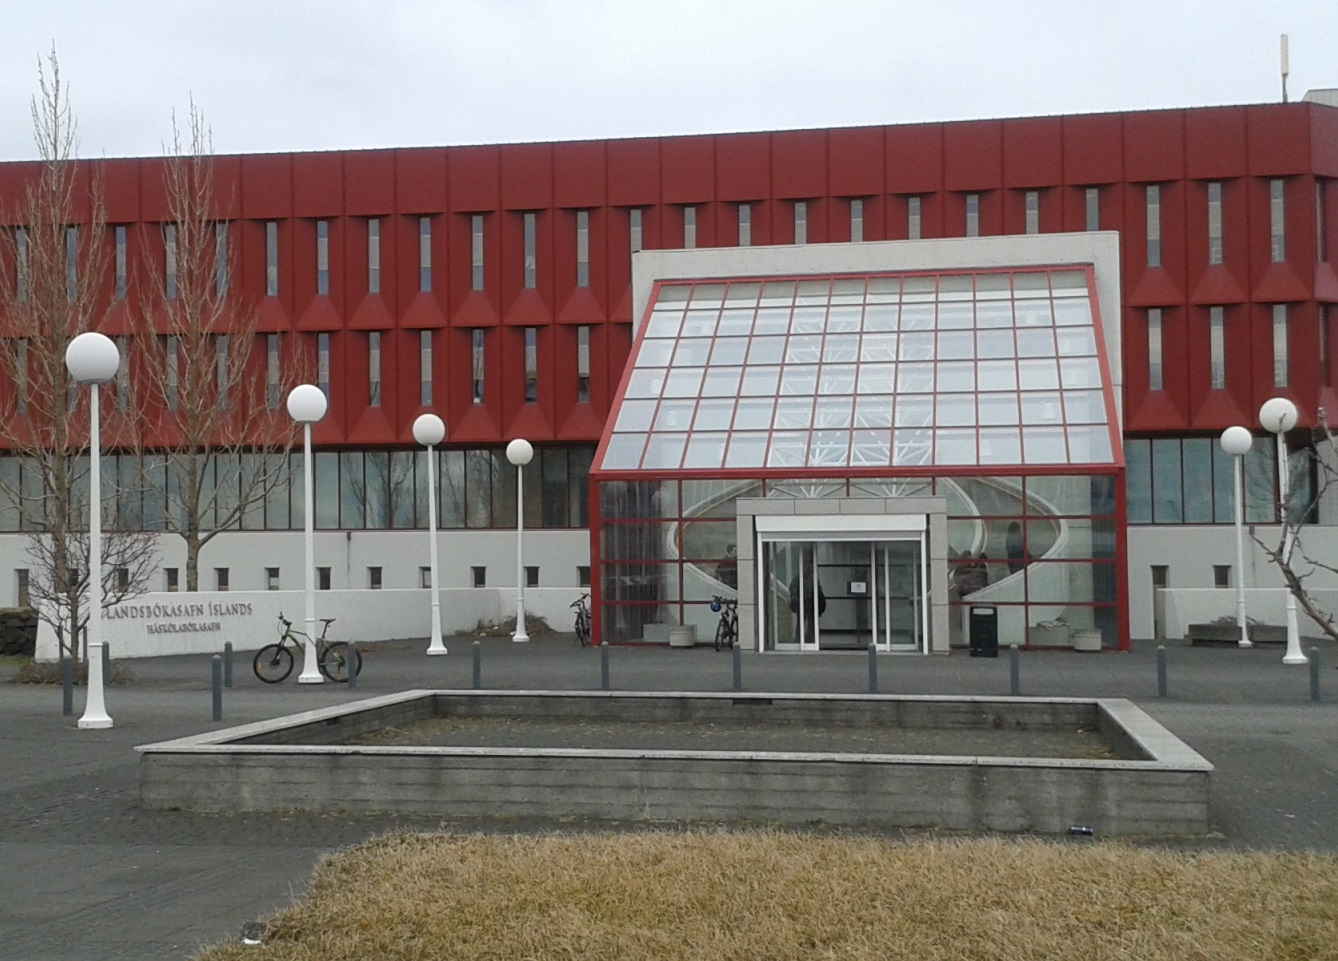 The National and University Library of Iceland